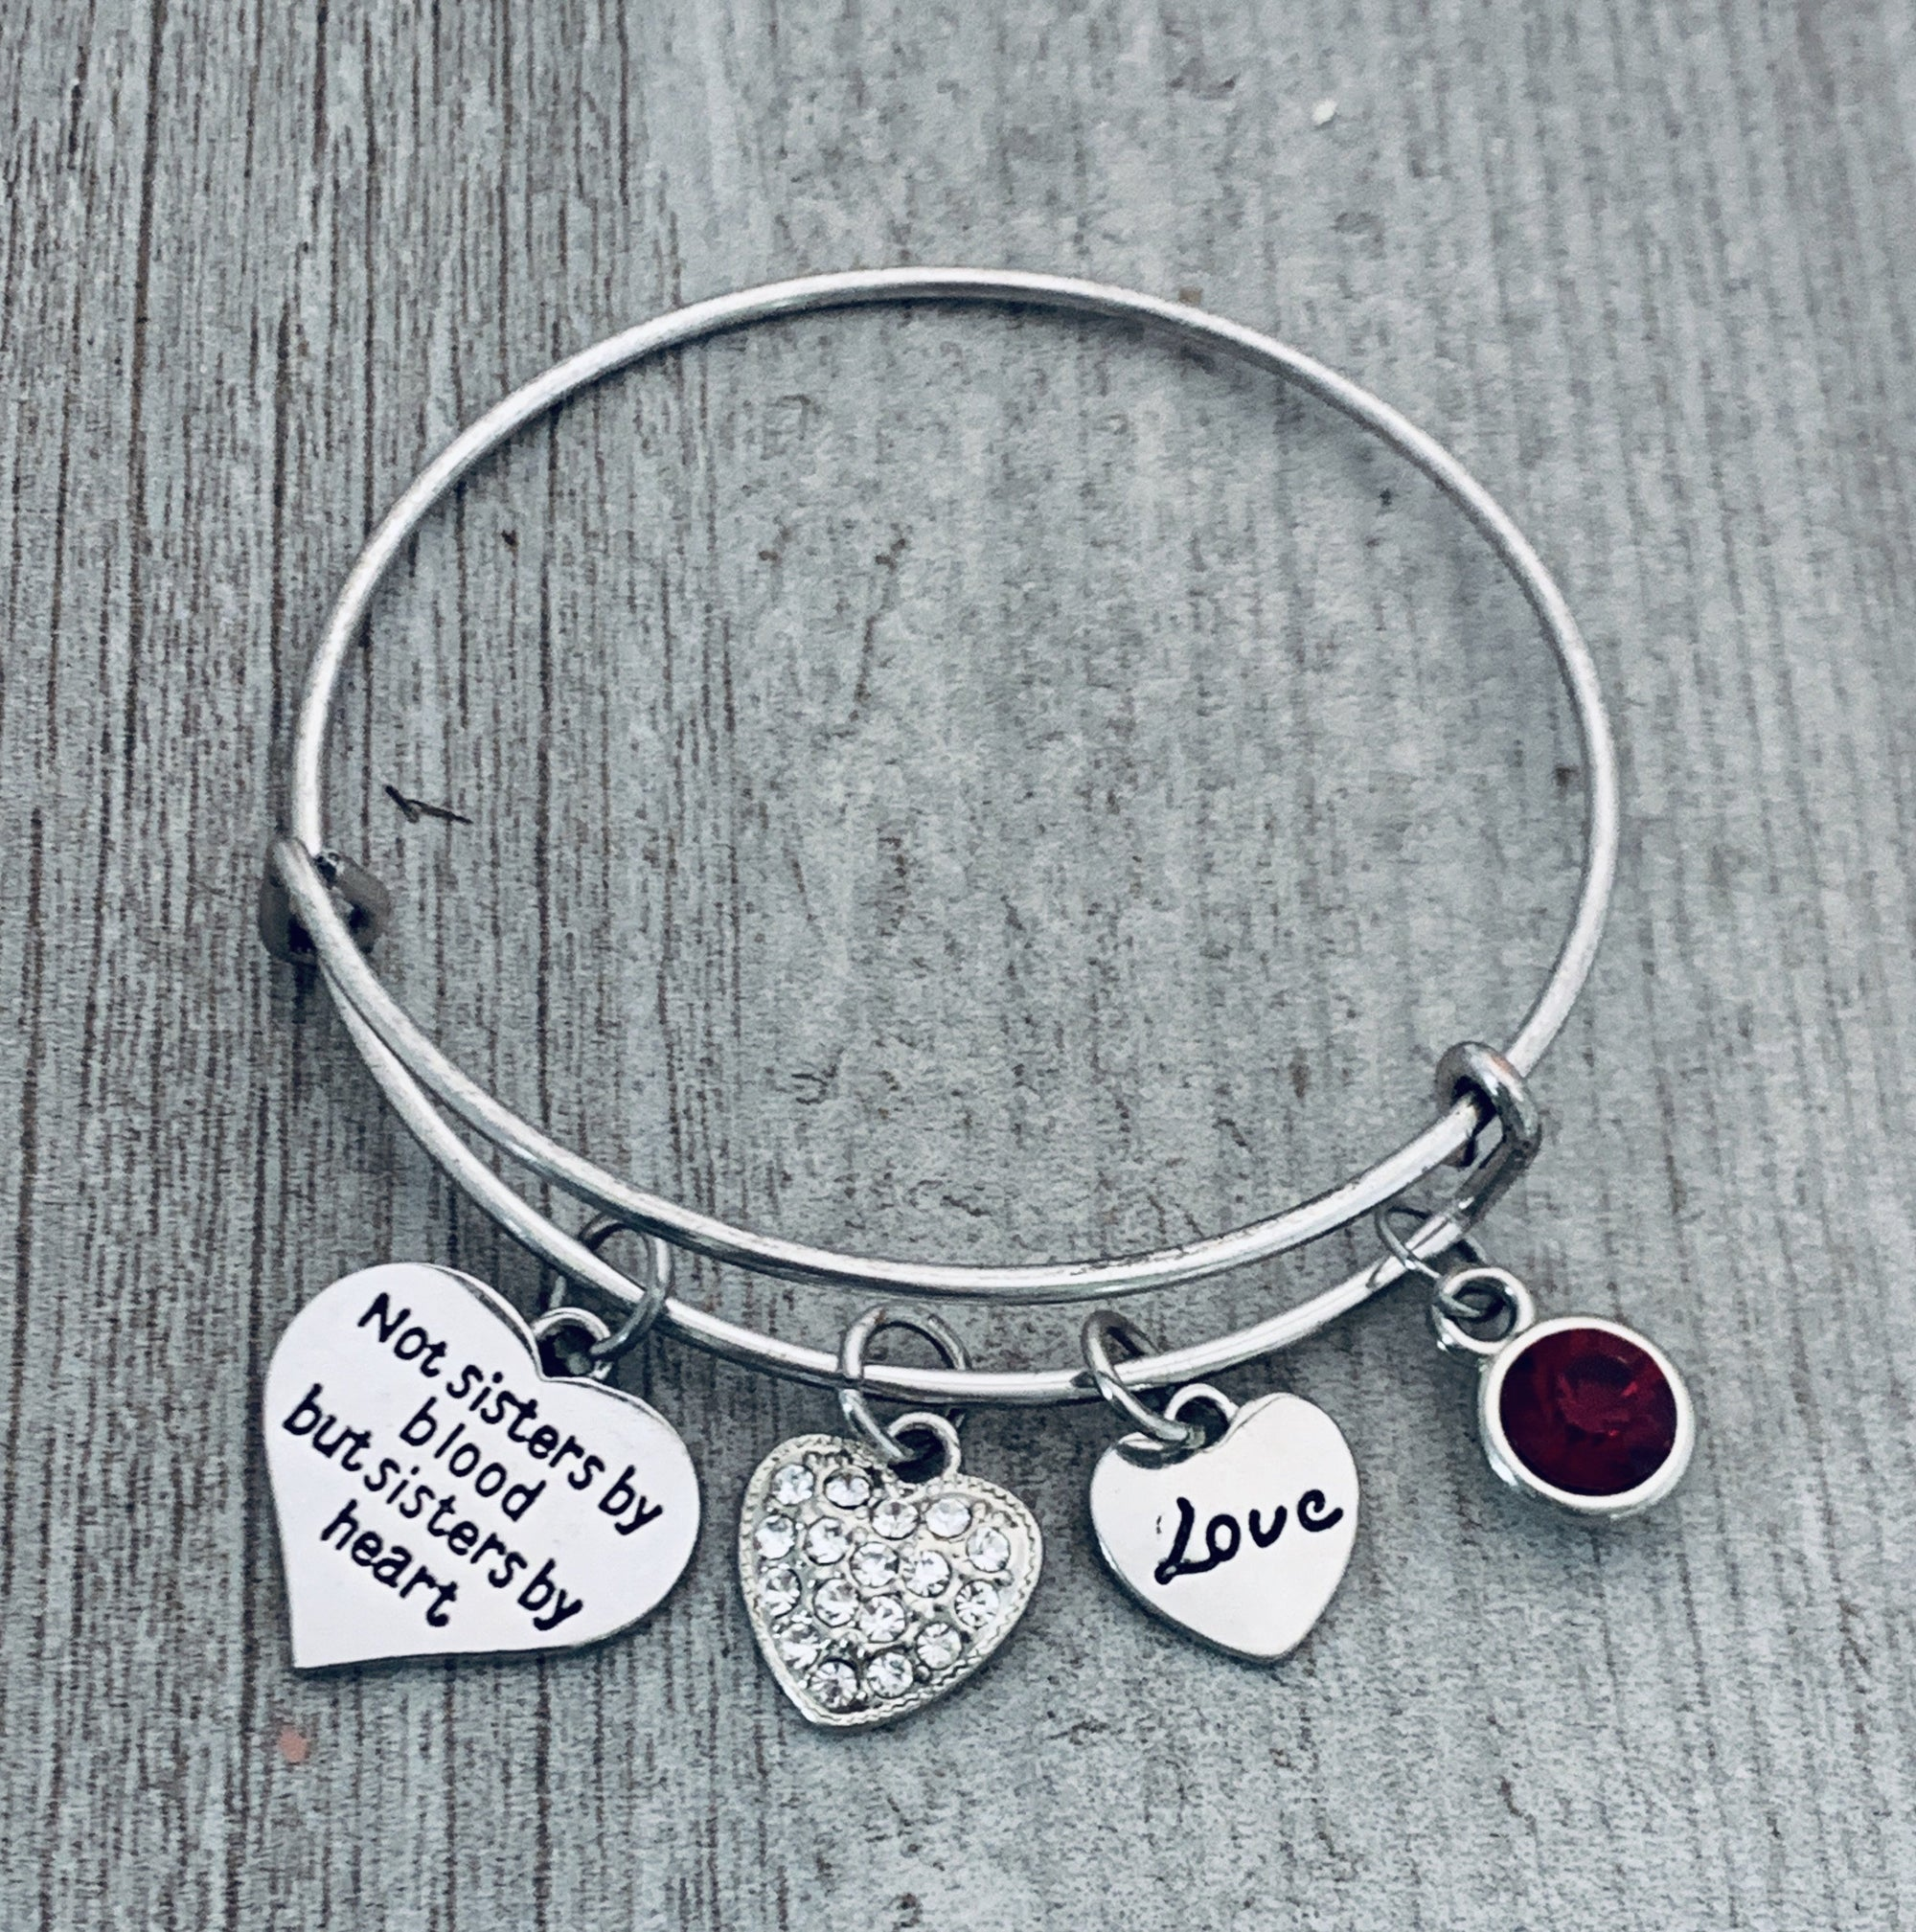 Personalized Friend Jewelry, Customized Gift for Friends